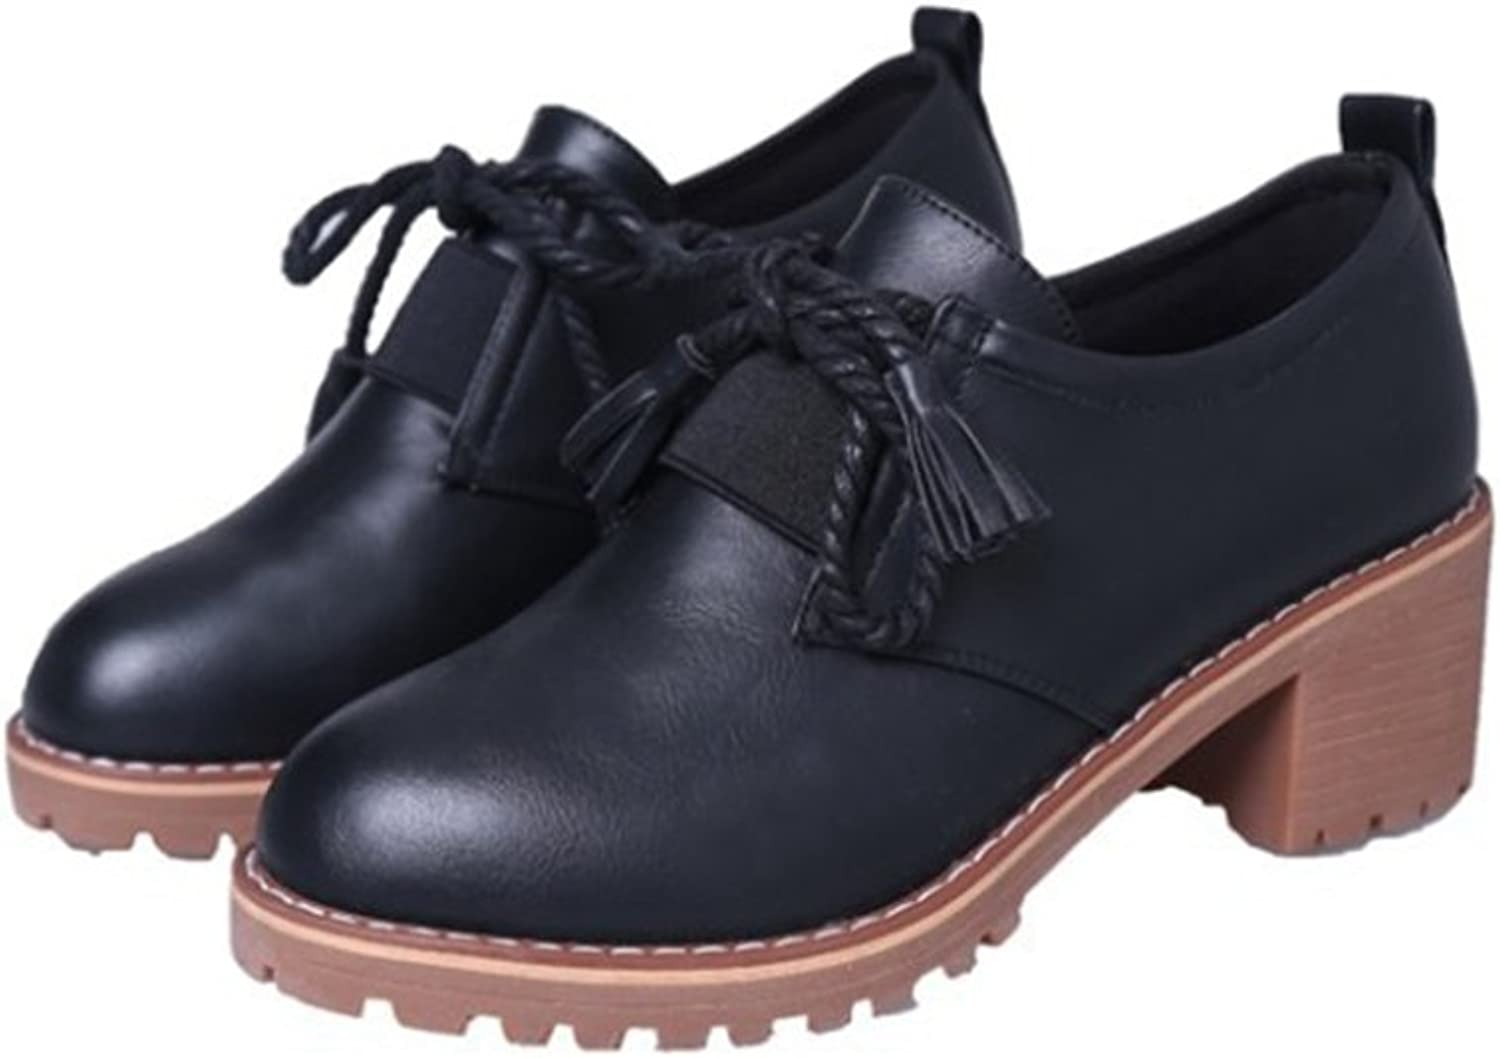 T-JULY Women's Classic Oxfords shoes - Waterproof Mid Heel Elastic Wingtip Brogue Tassel shoes